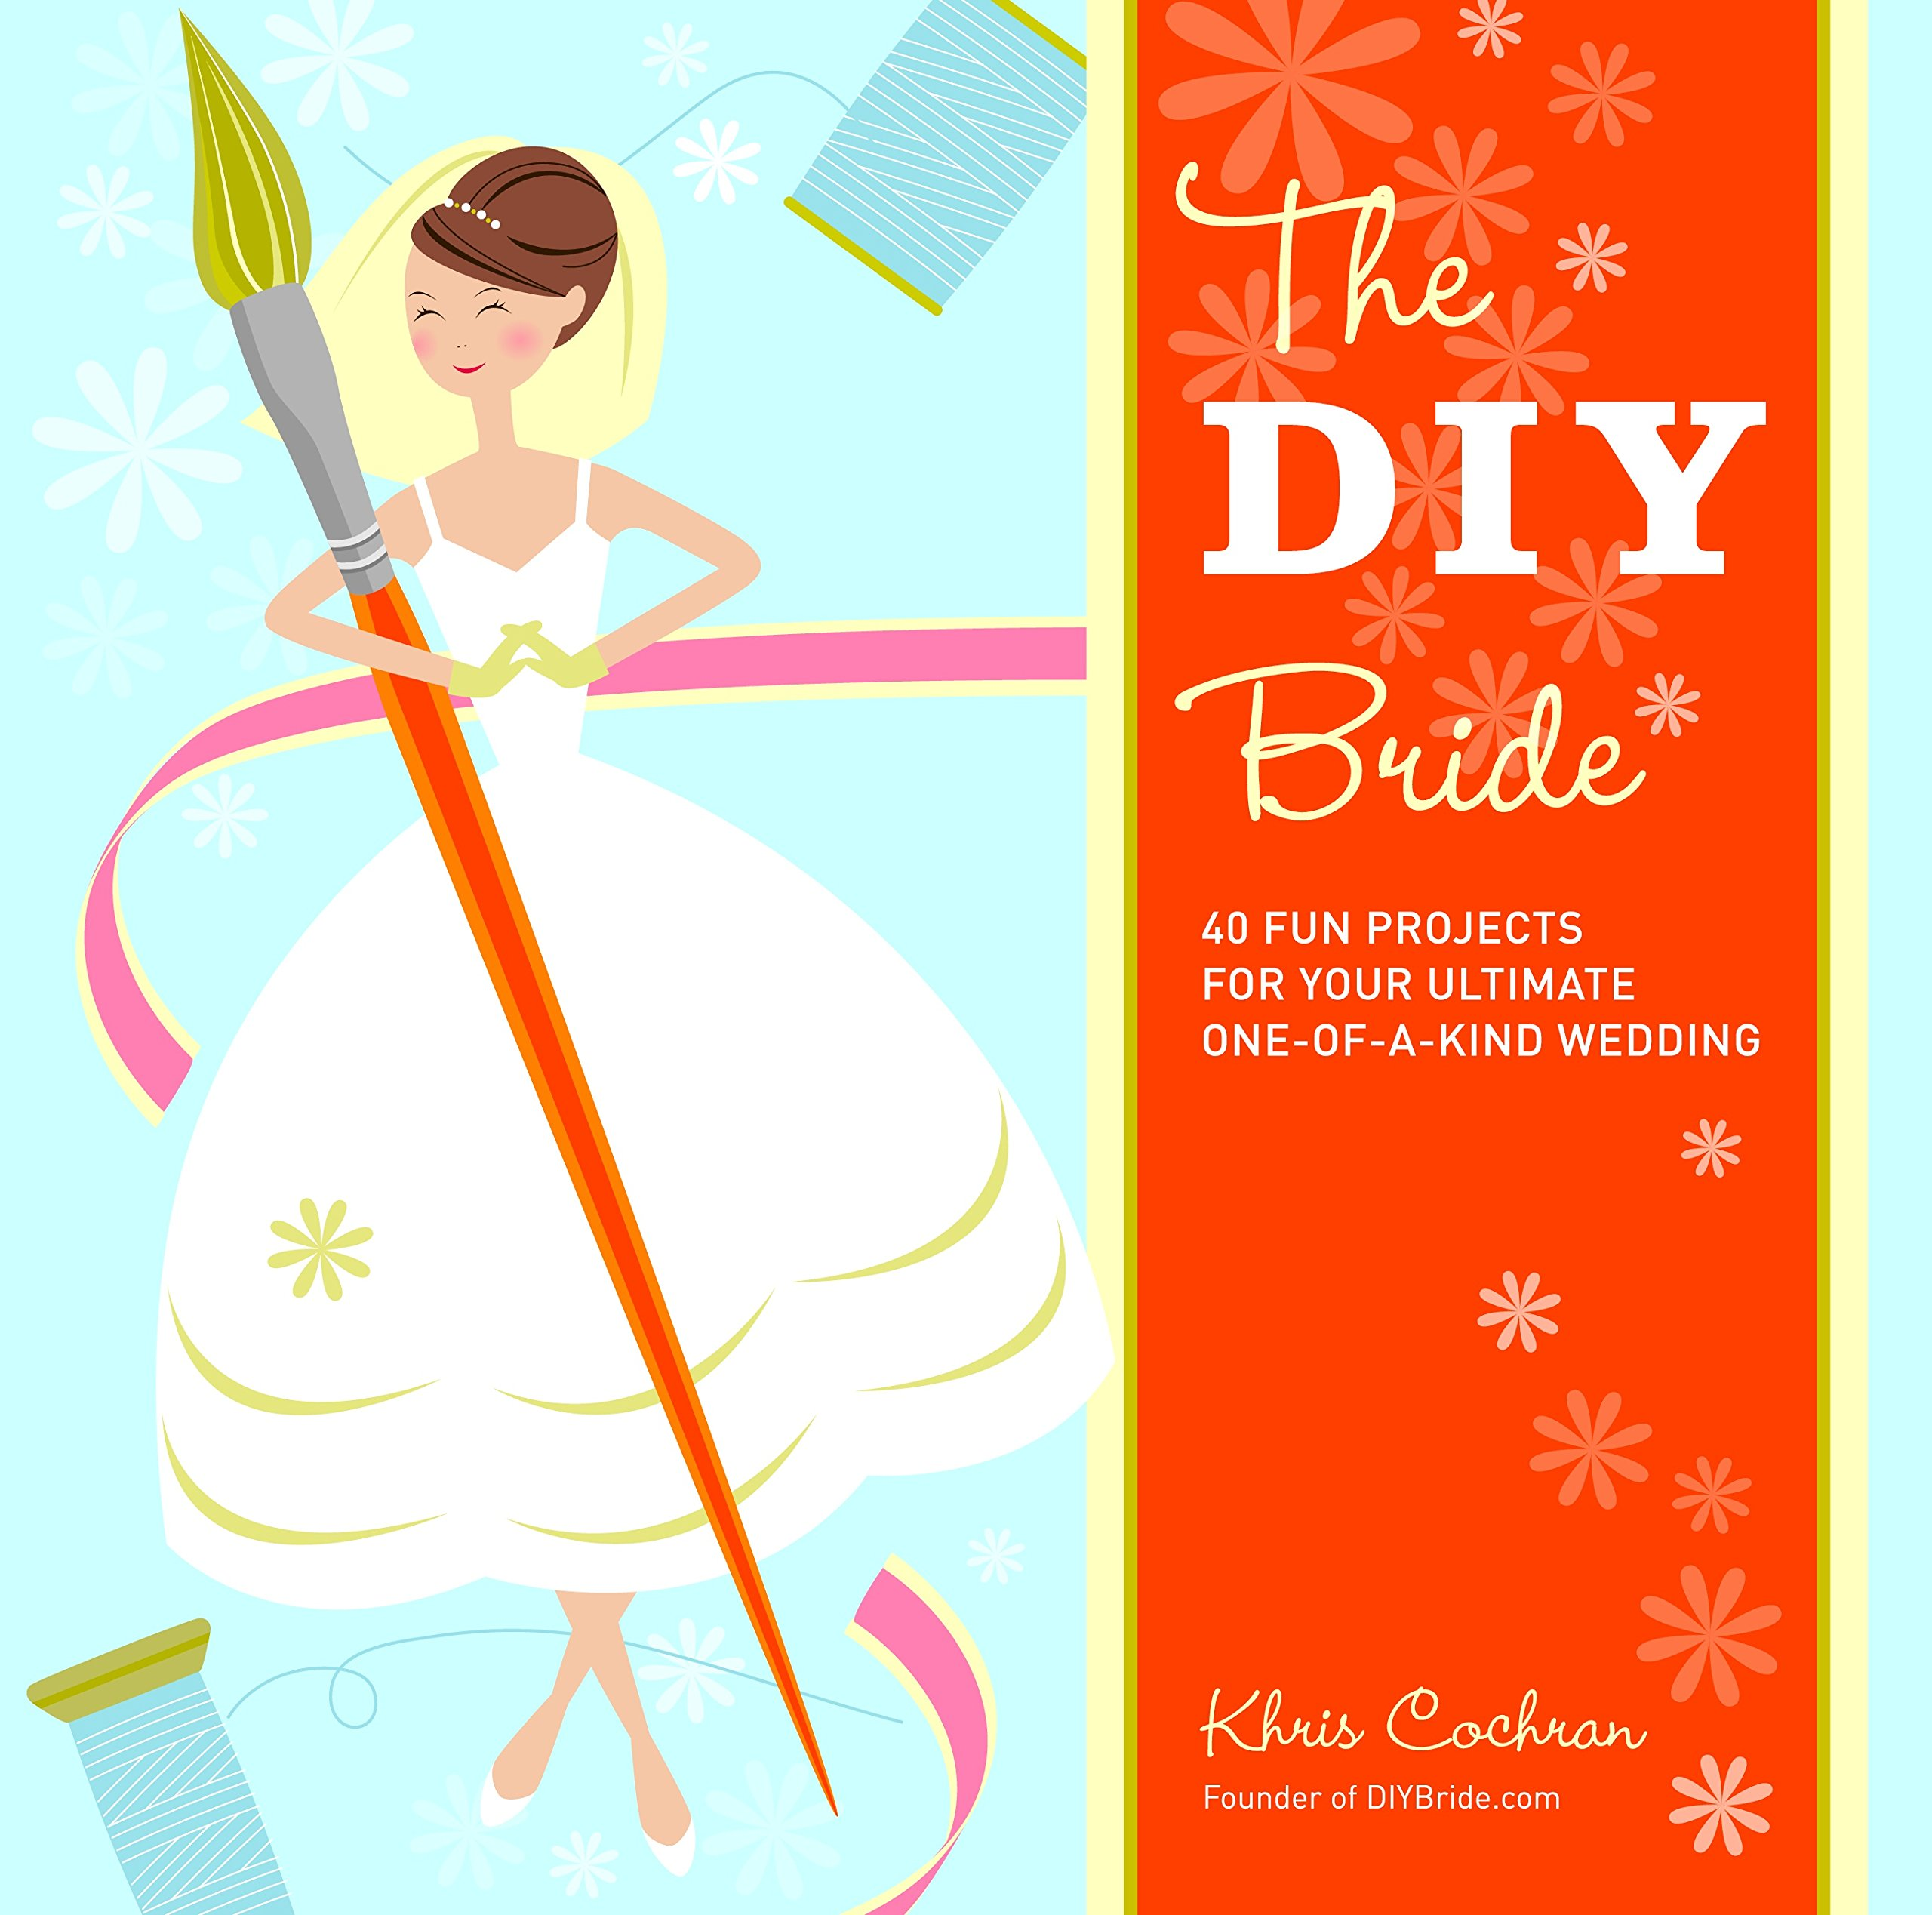 The DIY Bride: 40 Fun Projects for Your Ultimate One-of-a-Kind ...